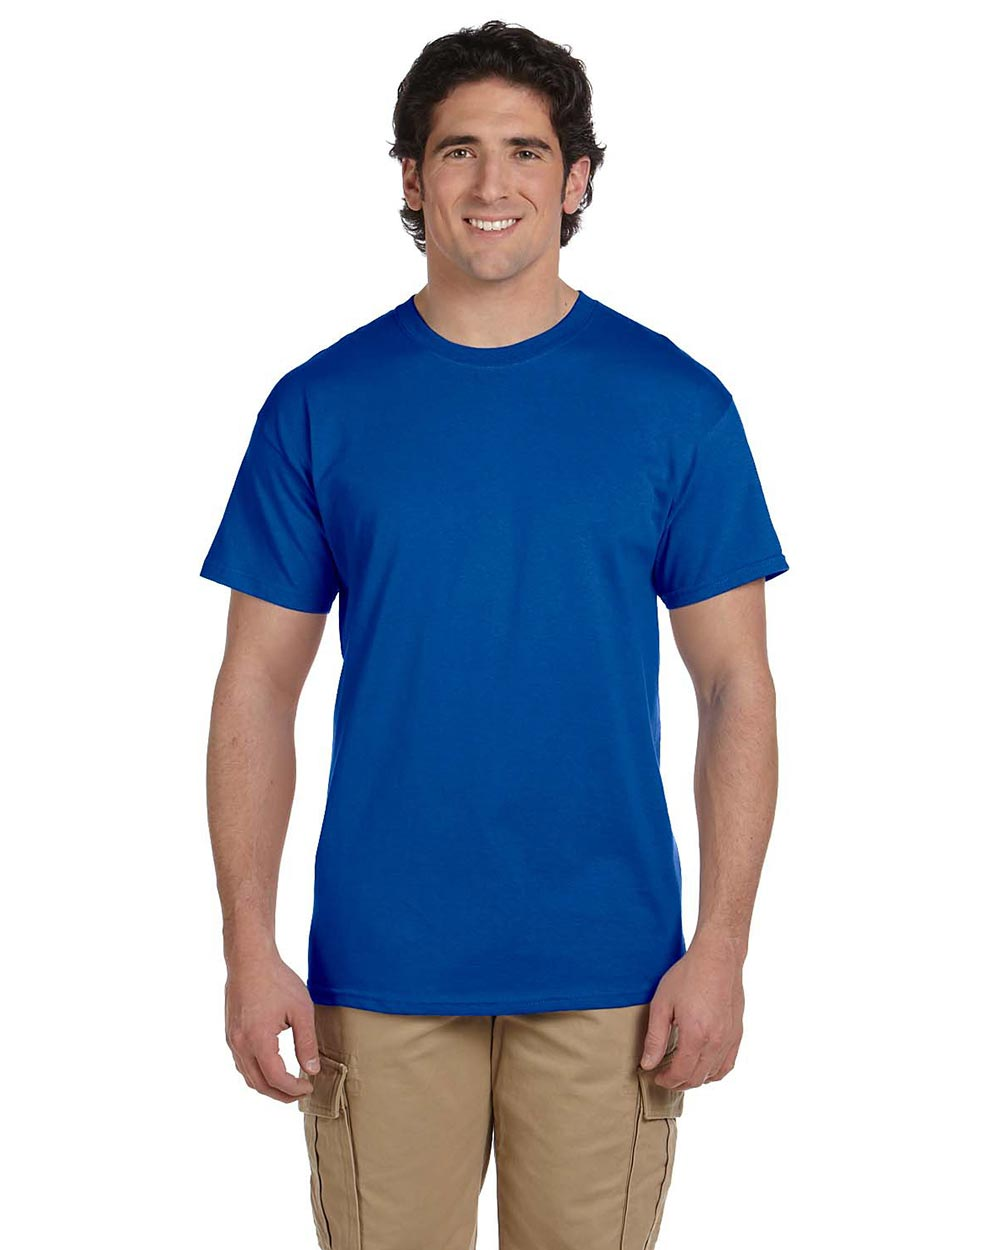 Fruit Of The Loom 3931 - Adult 8.3 oz HD Cotton T-Shirt